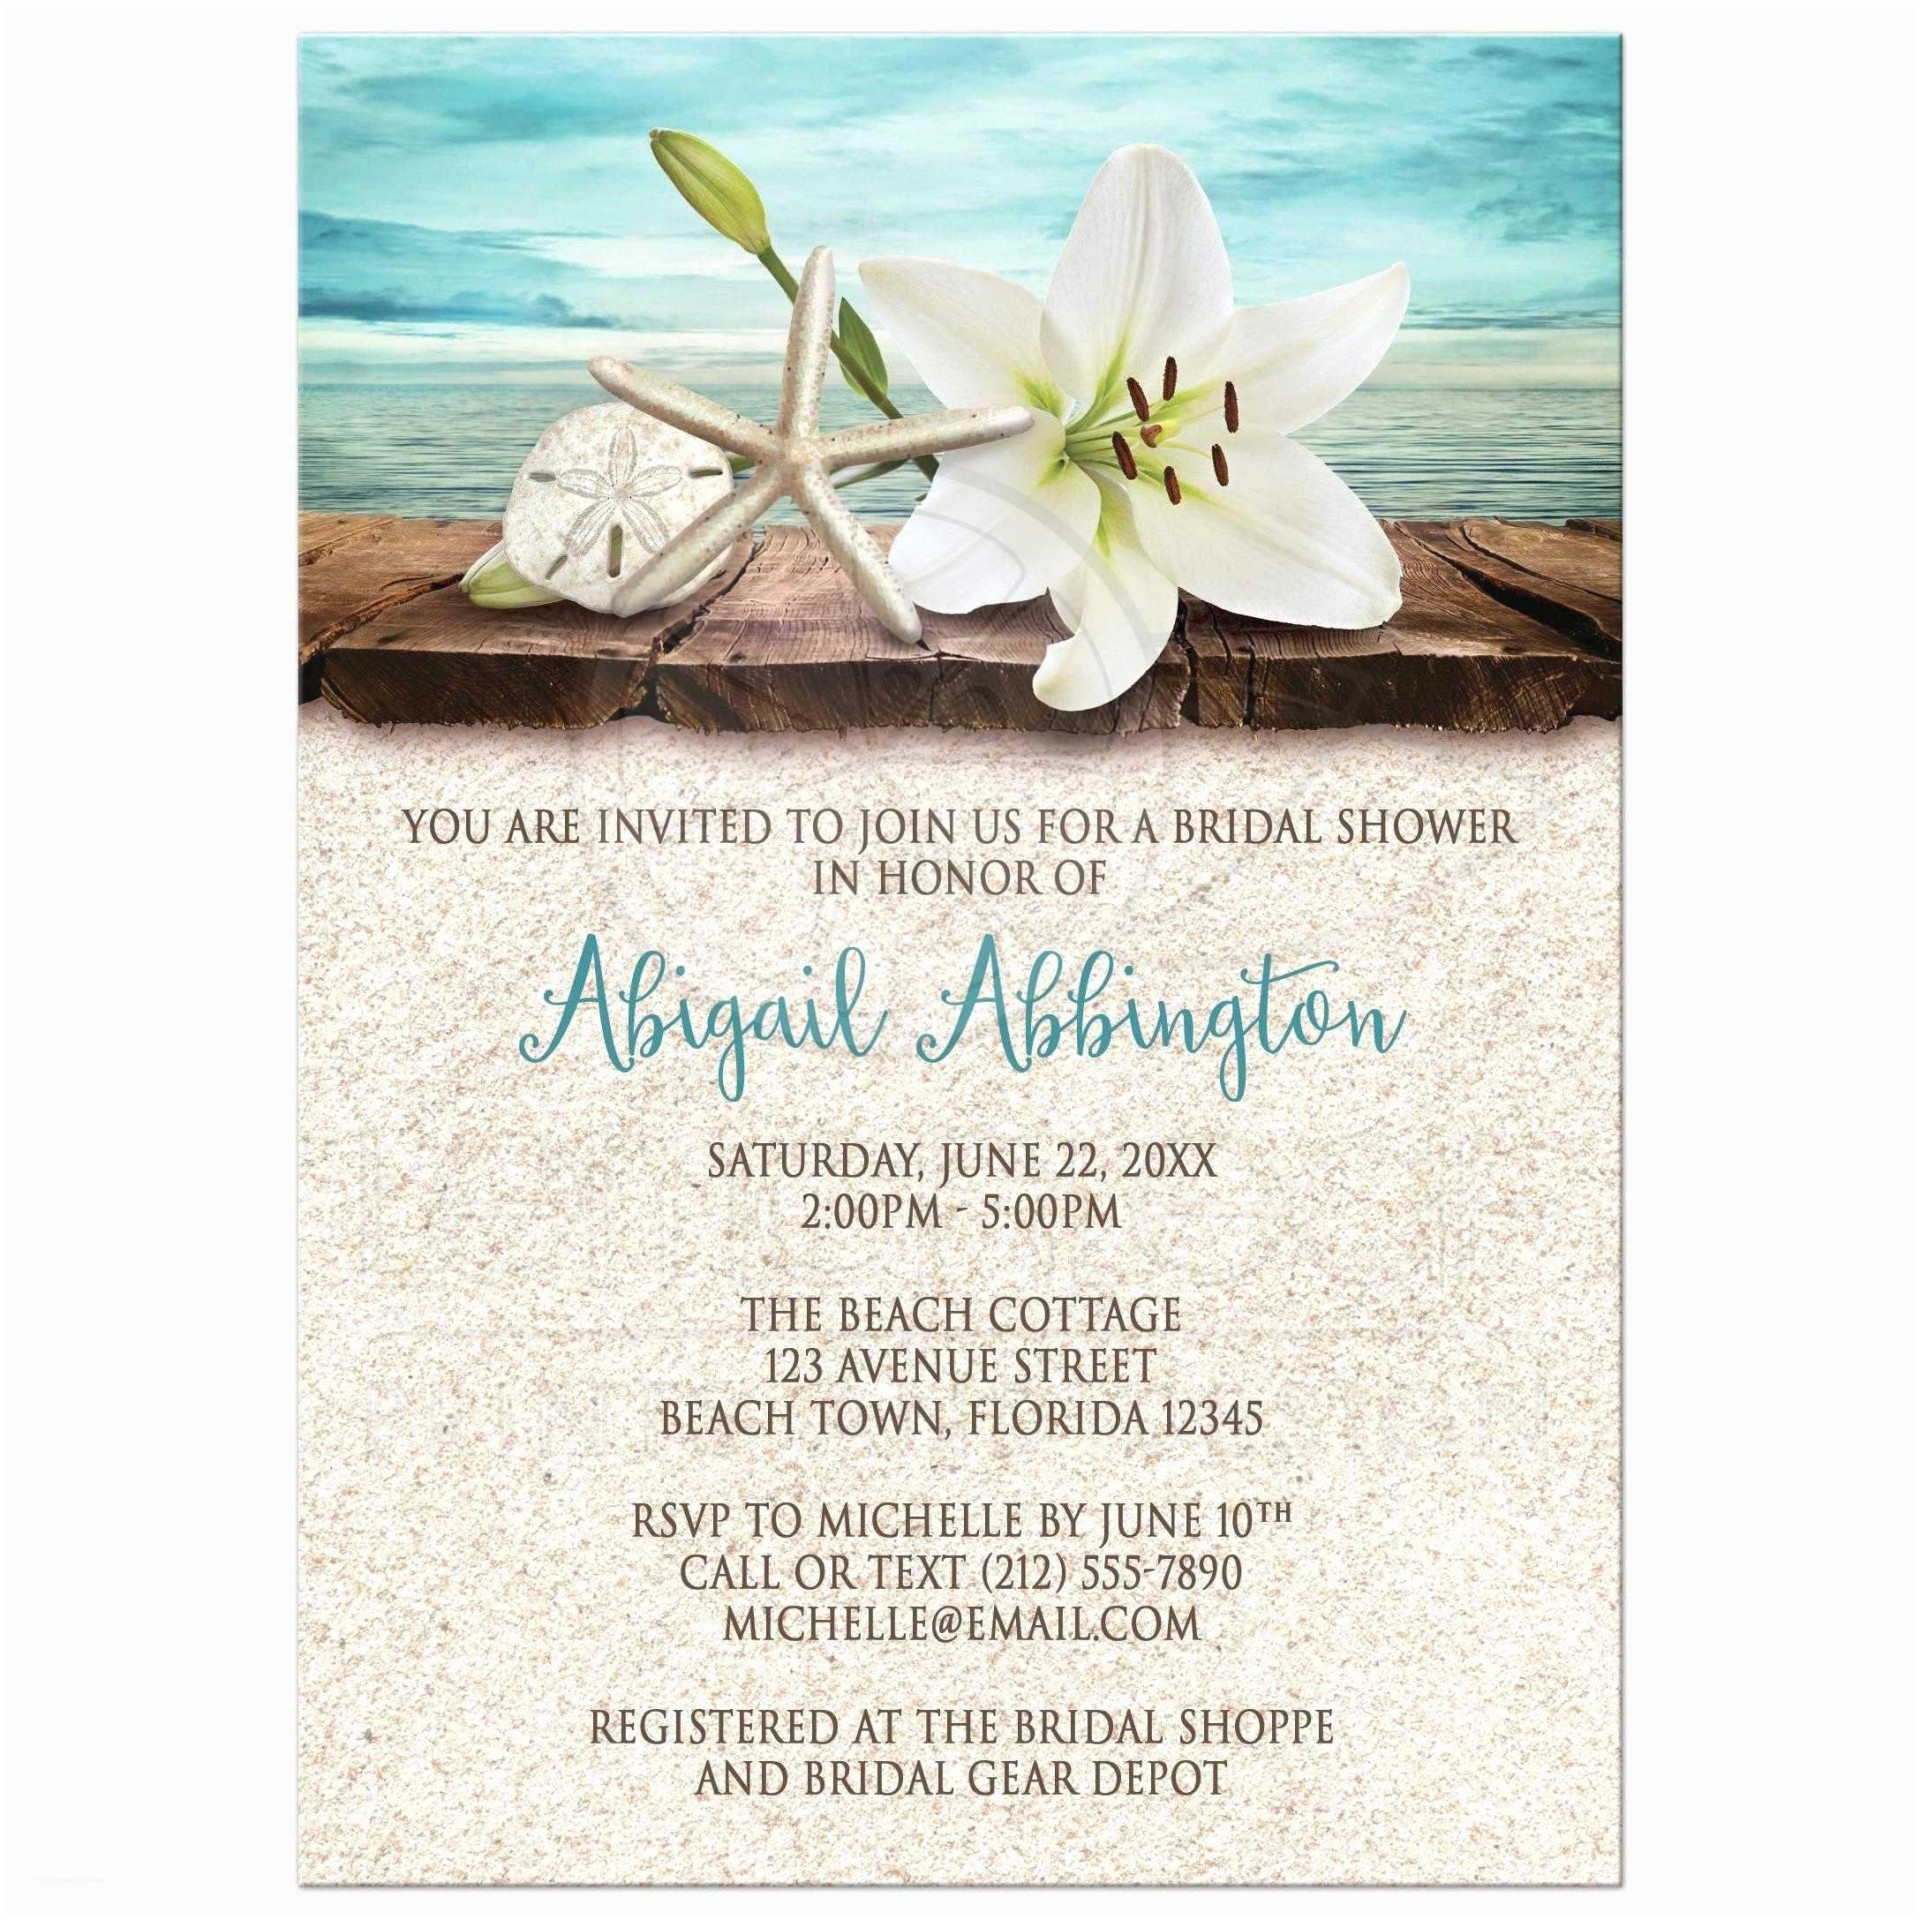 009 Sensational Beach Wedding Invitation Template High Definition  Templates Free Download For Word1920